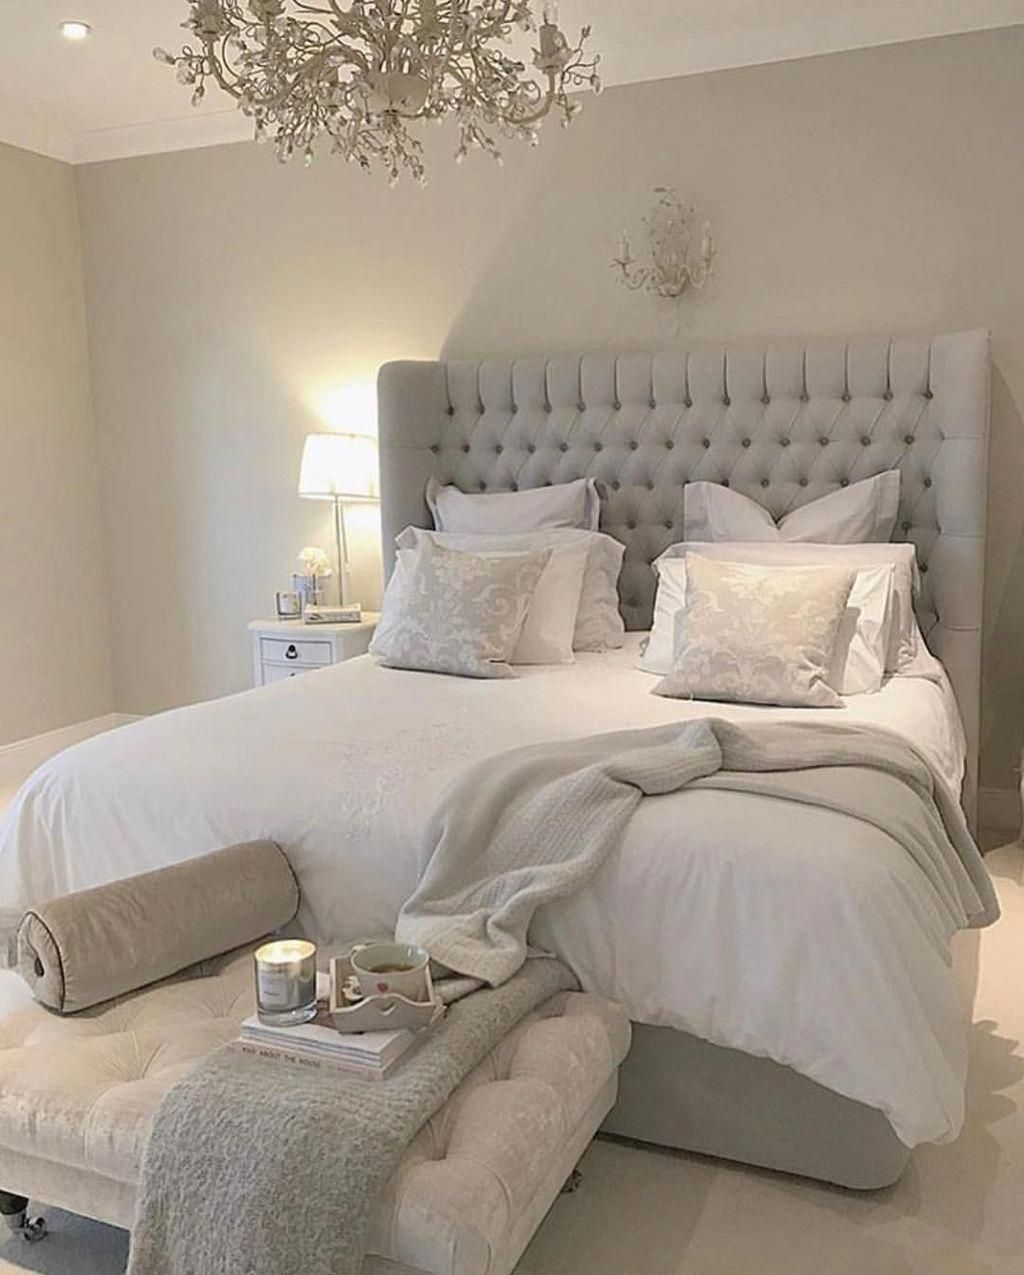 48 The Best Master Bedroom Design Ideas To Refresh in 2020 ...